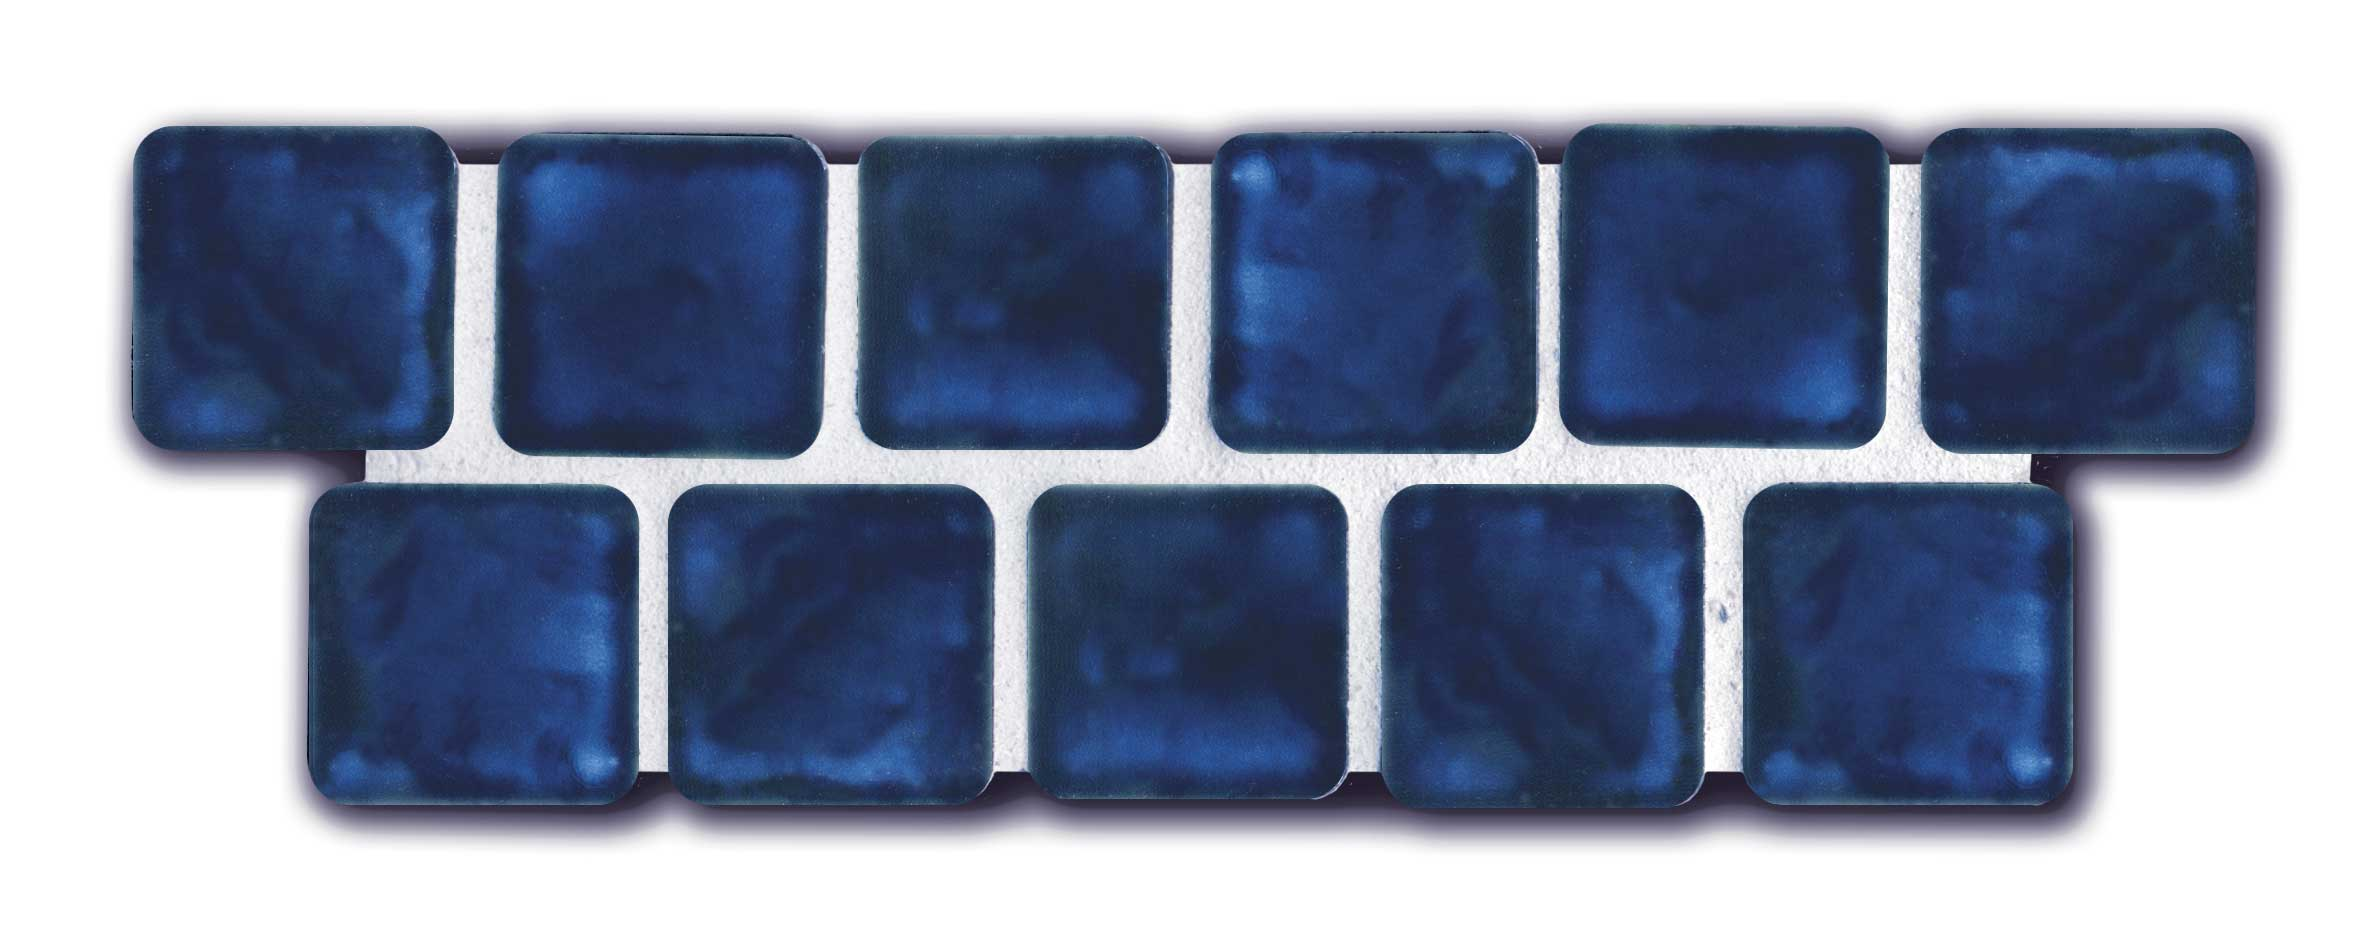 Navy blue ceramic tile